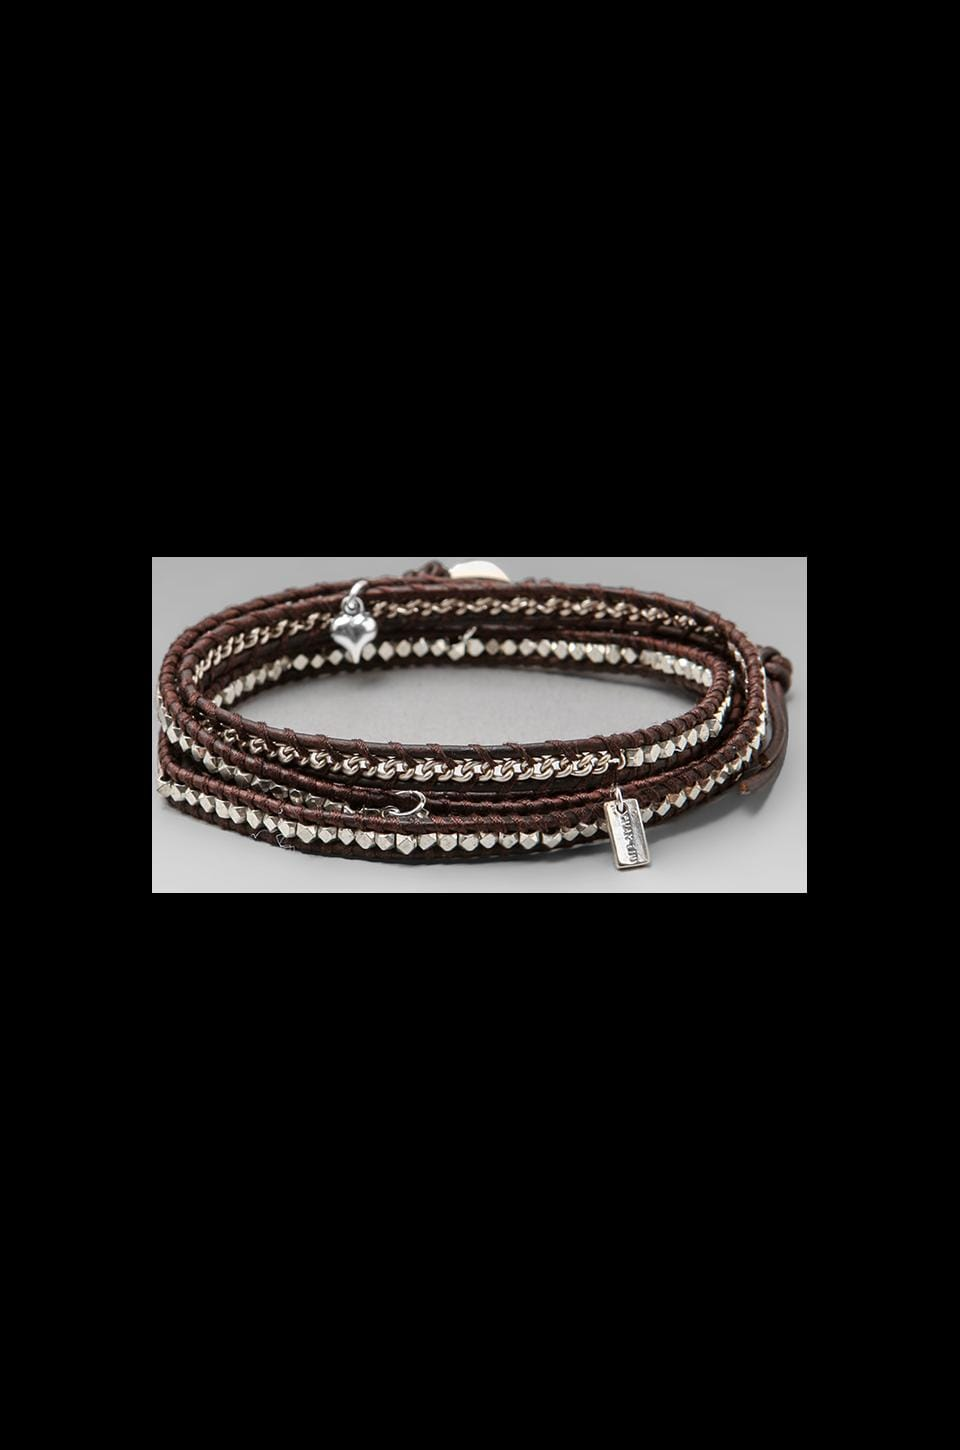 CHAN LUU Threaded Wrap Charm Bracelet in Silver/Natural Dark Brown